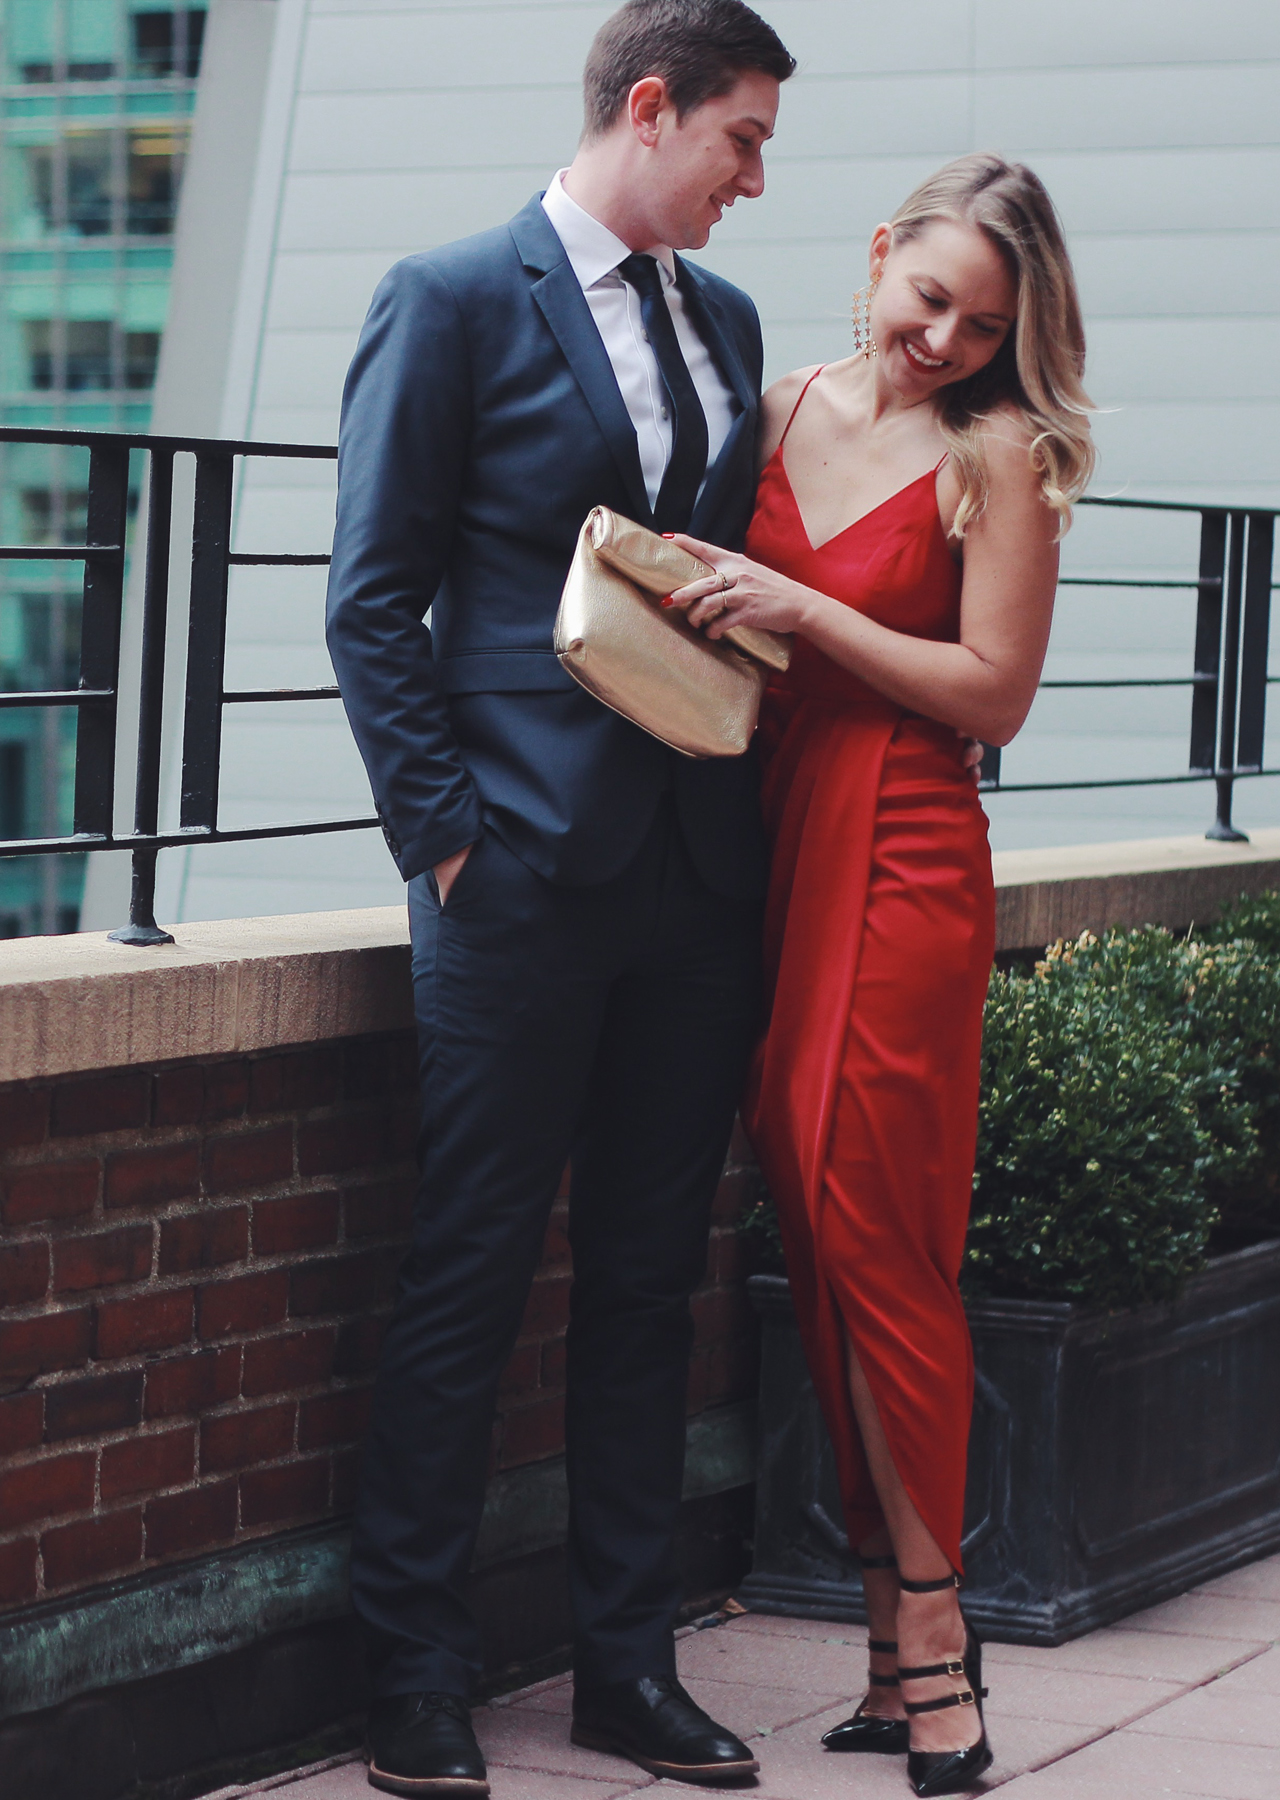 The Steele Maiden: His and Hers Special Occasion Holiday Style - Red Wrap dress and navy blue suit